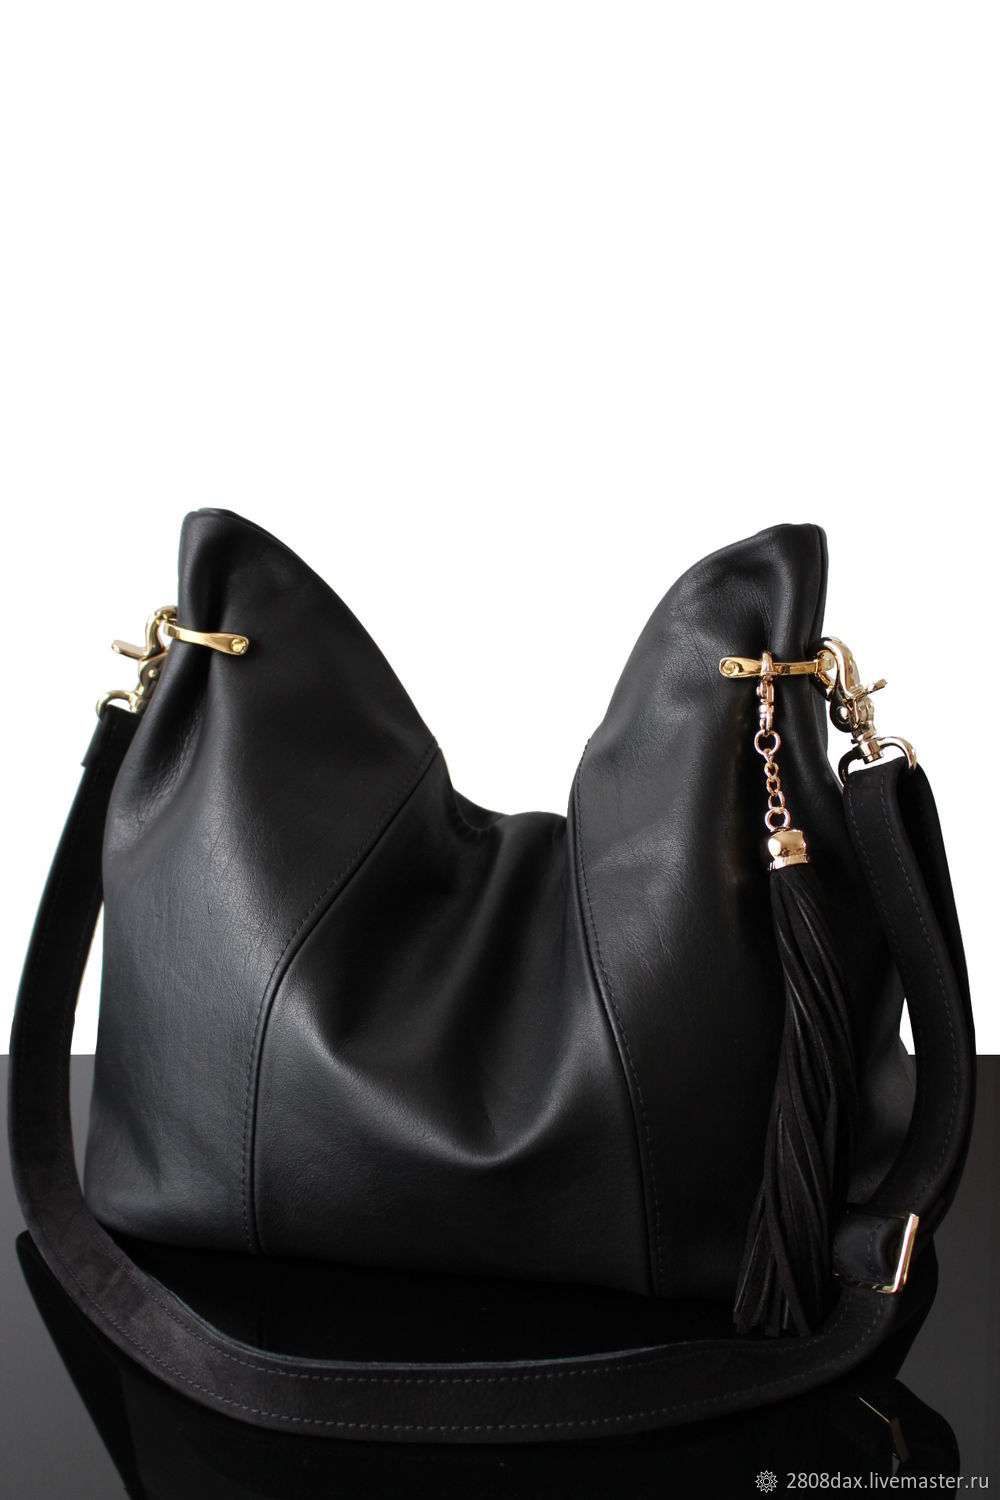 Granville Black leather hobo bag with a long strap, Classic Bag, Bordeaux,  Фото №1